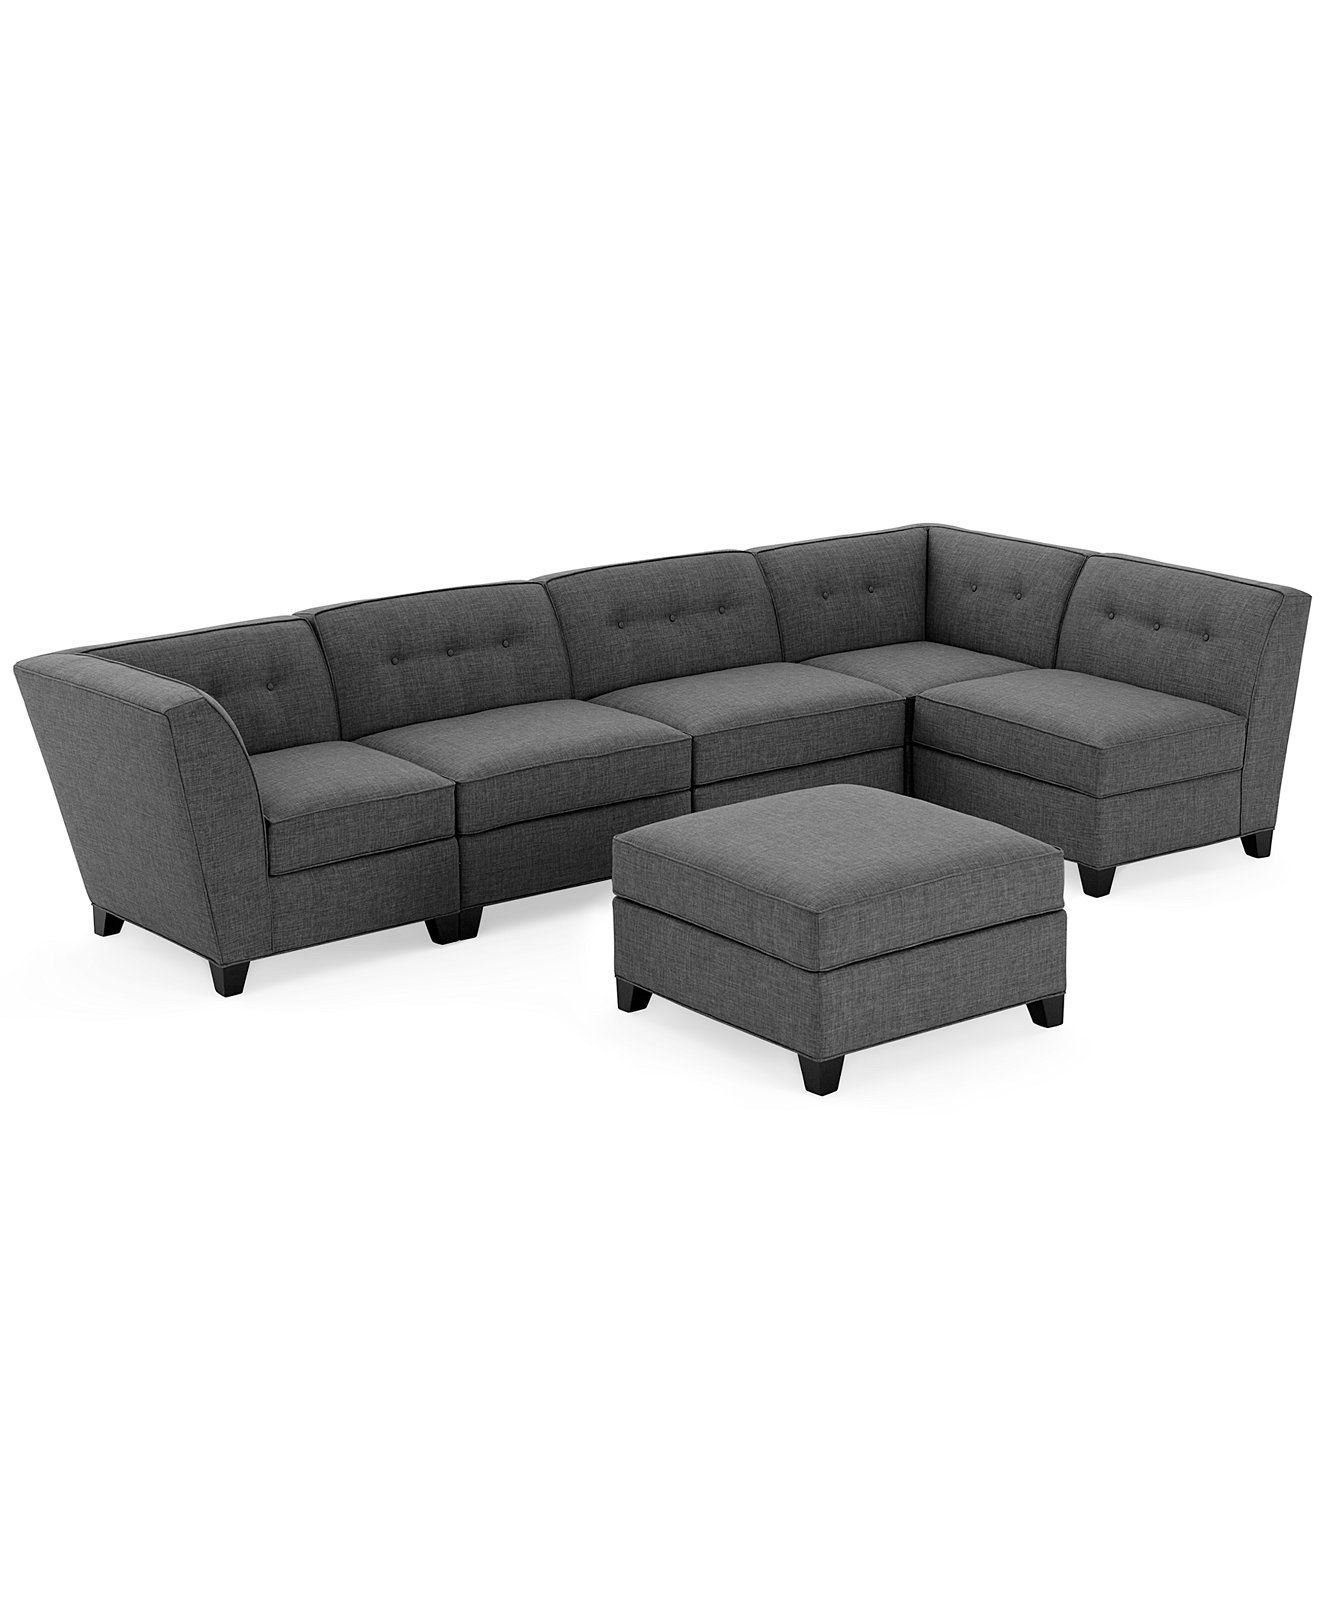 Best Harper Fabric Modular Sectional Sofa 6 Piece 2 Square 400 x 300